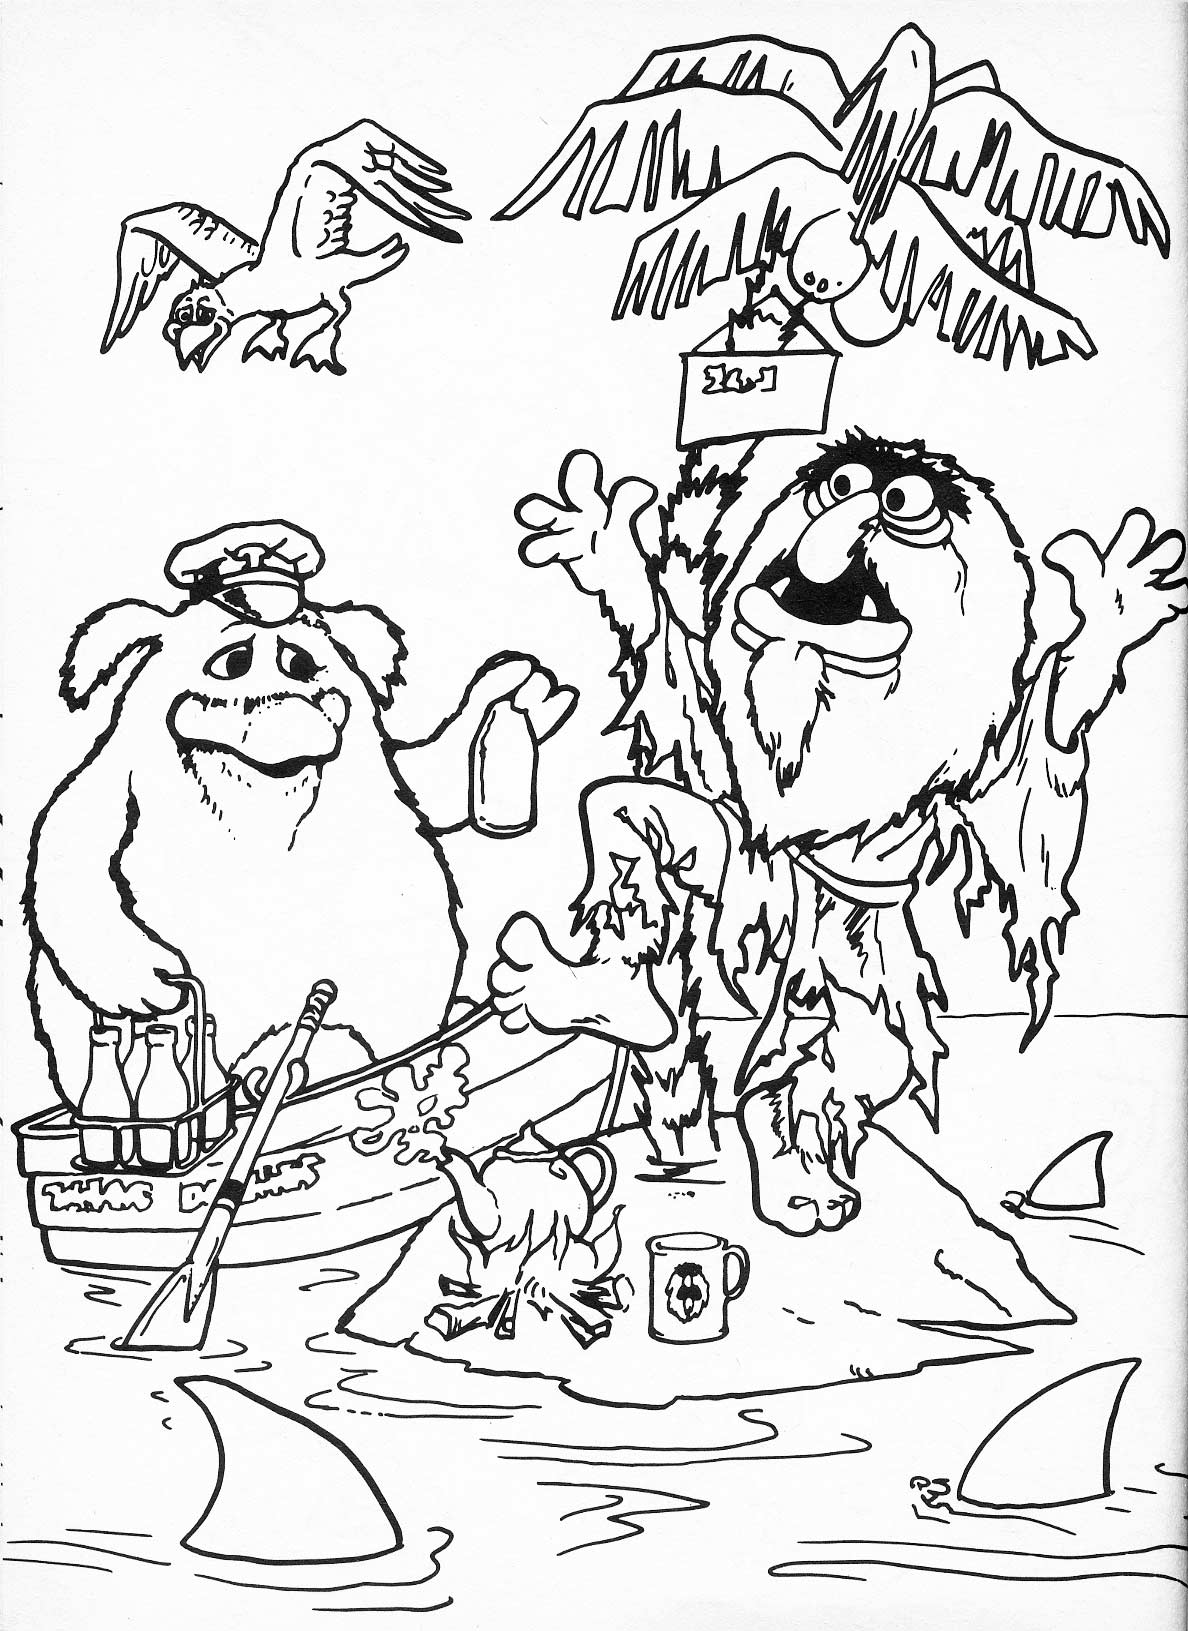 Muppets Animal Drawing At Getdrawings Com Free For Personal Use